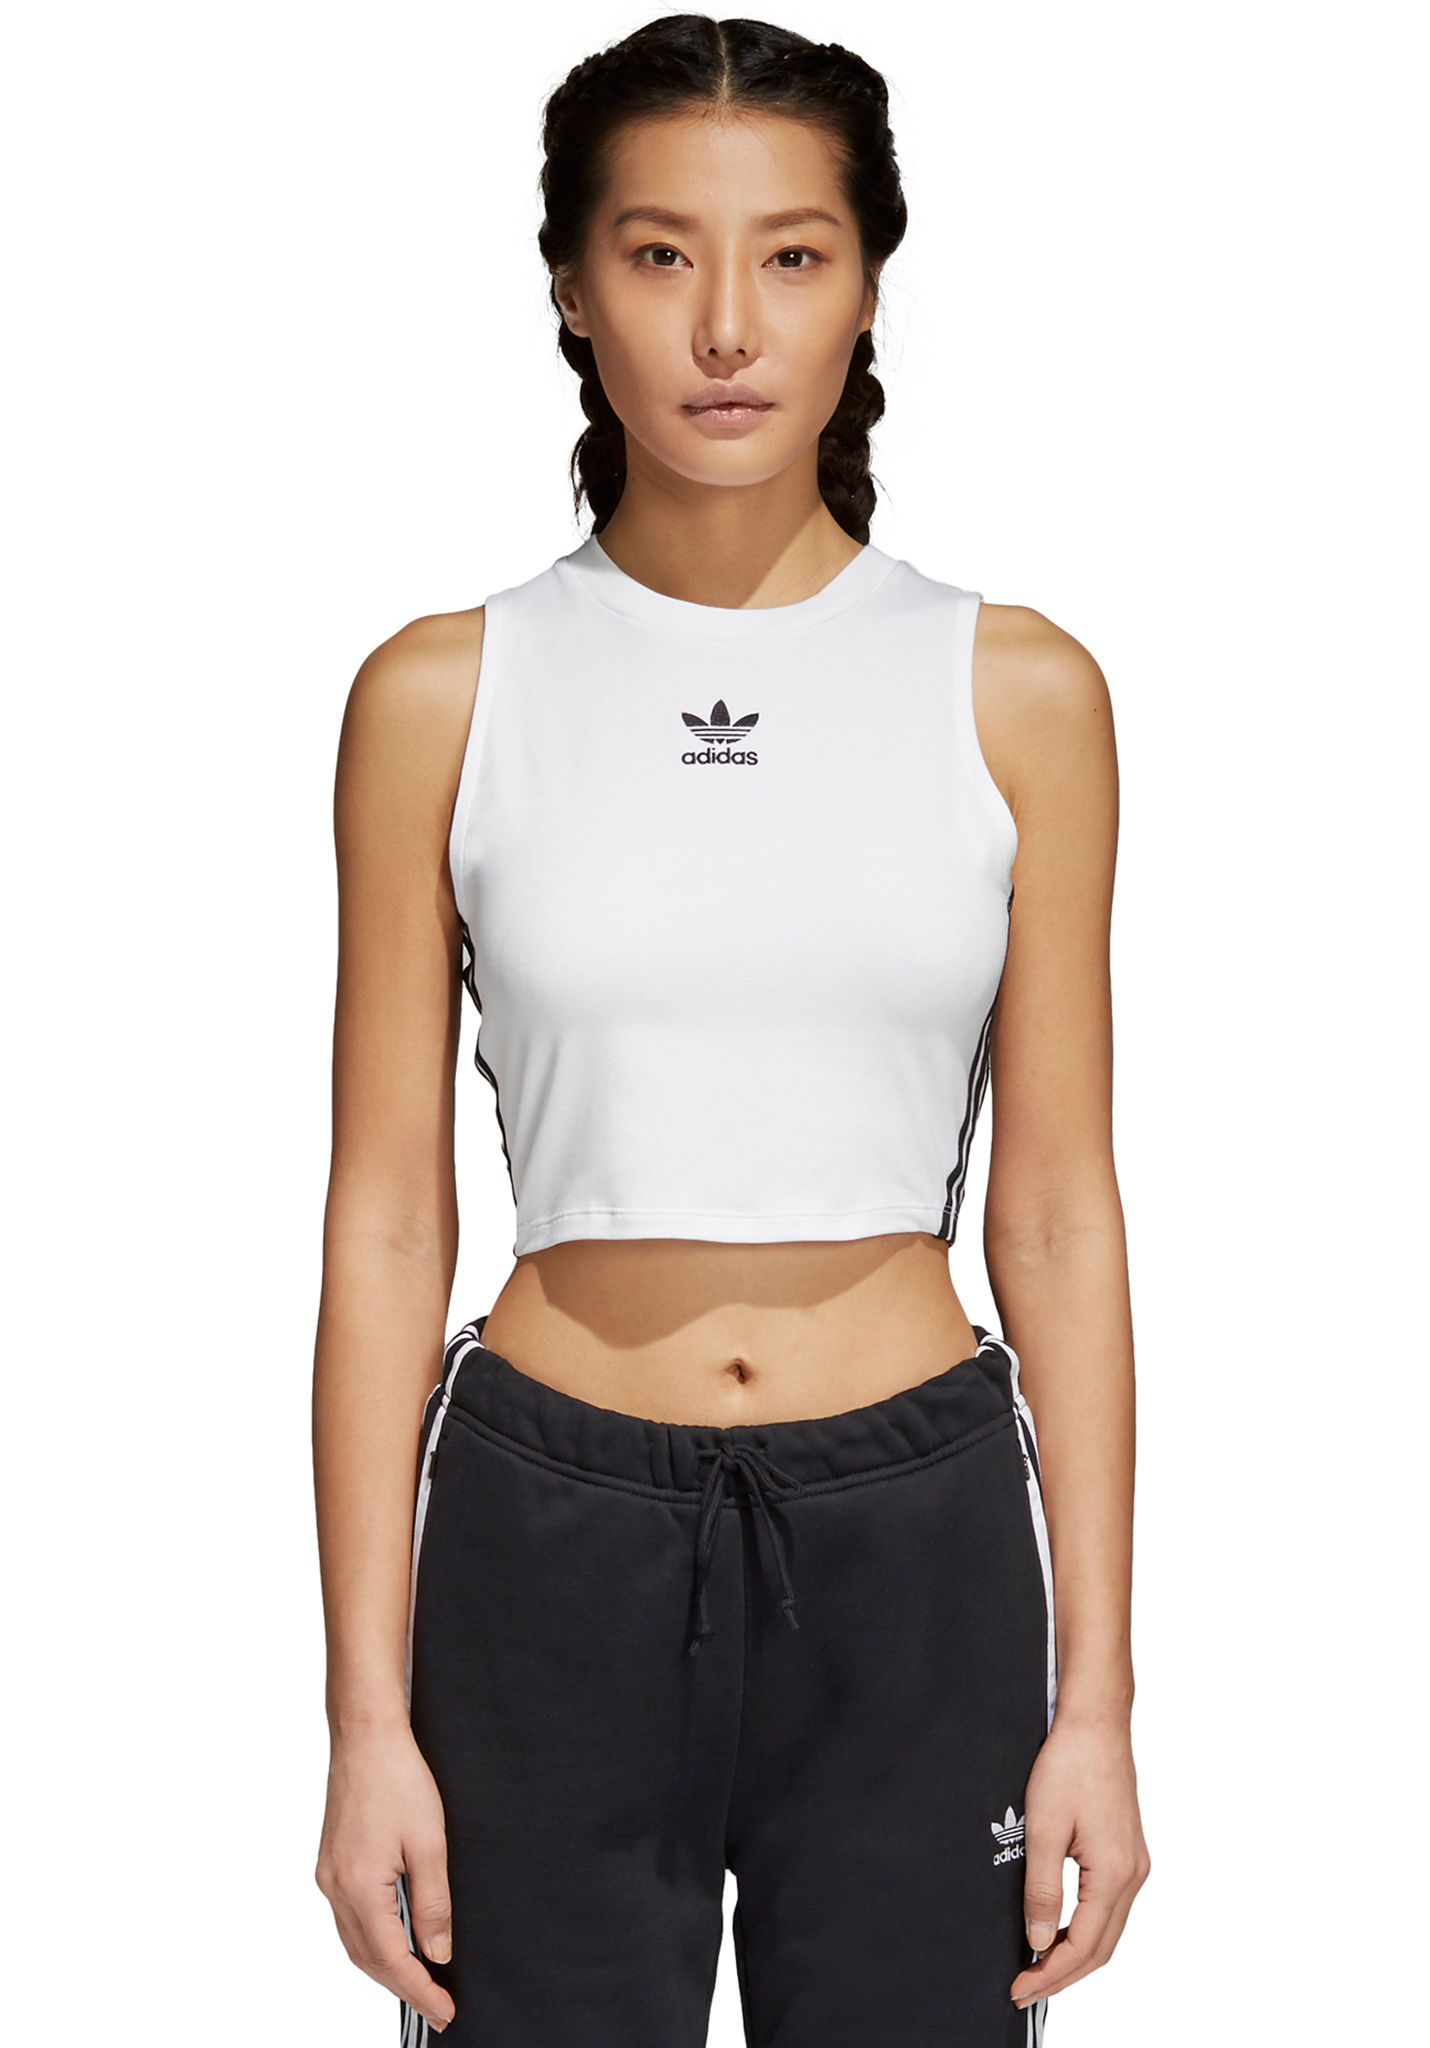 478843f120f6 ADIDAS ORIGINALS Crop - Top for Women - White - Planet Sports